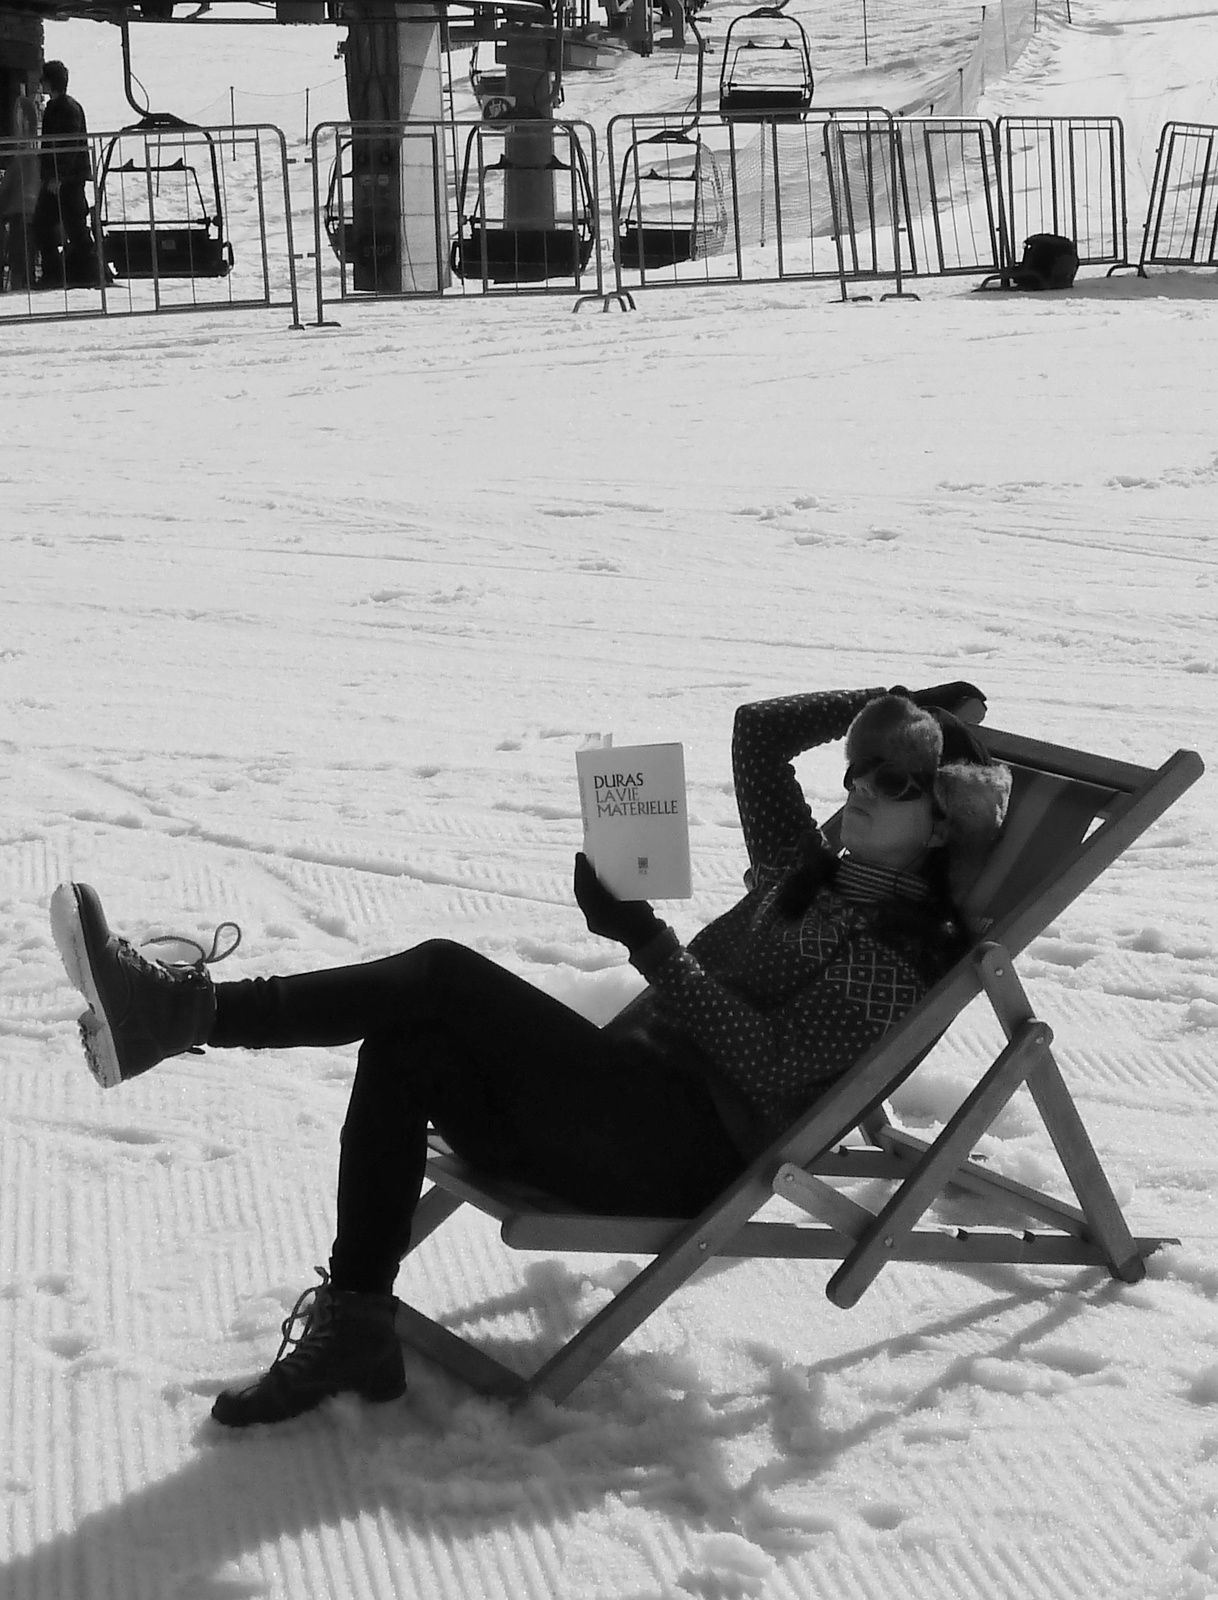 Reading in the snow